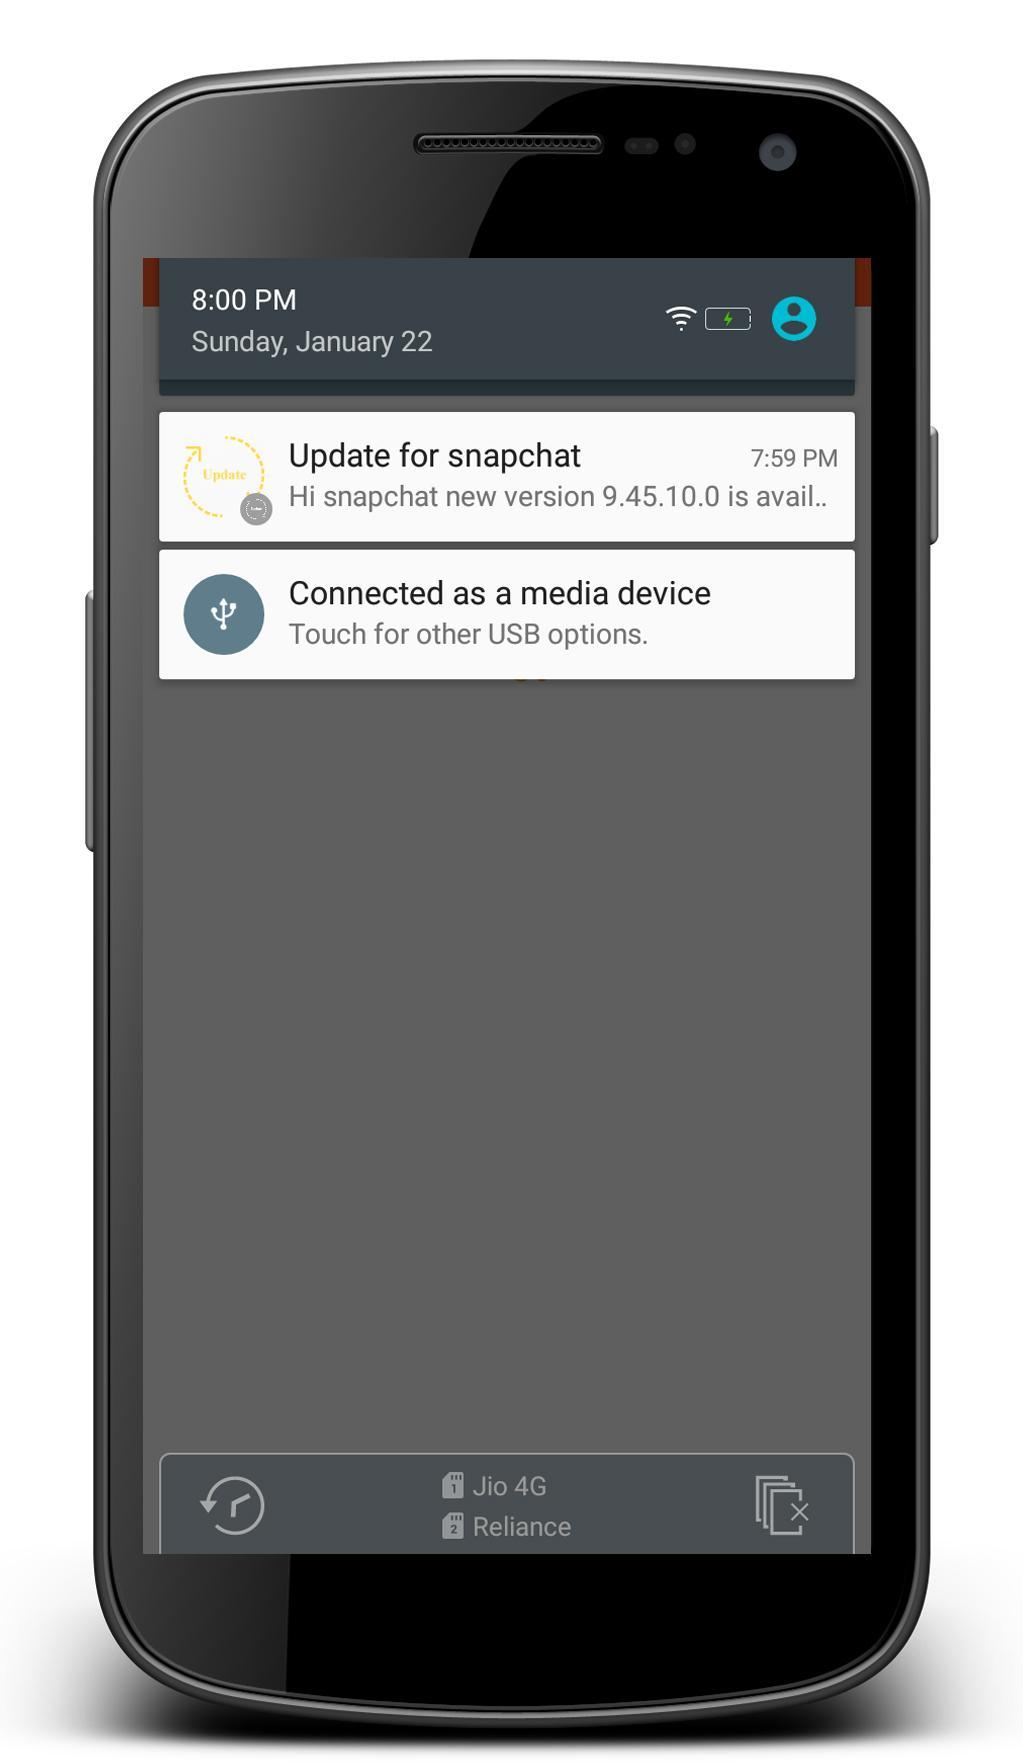 Check latest version for snapchat for Android - APK Download